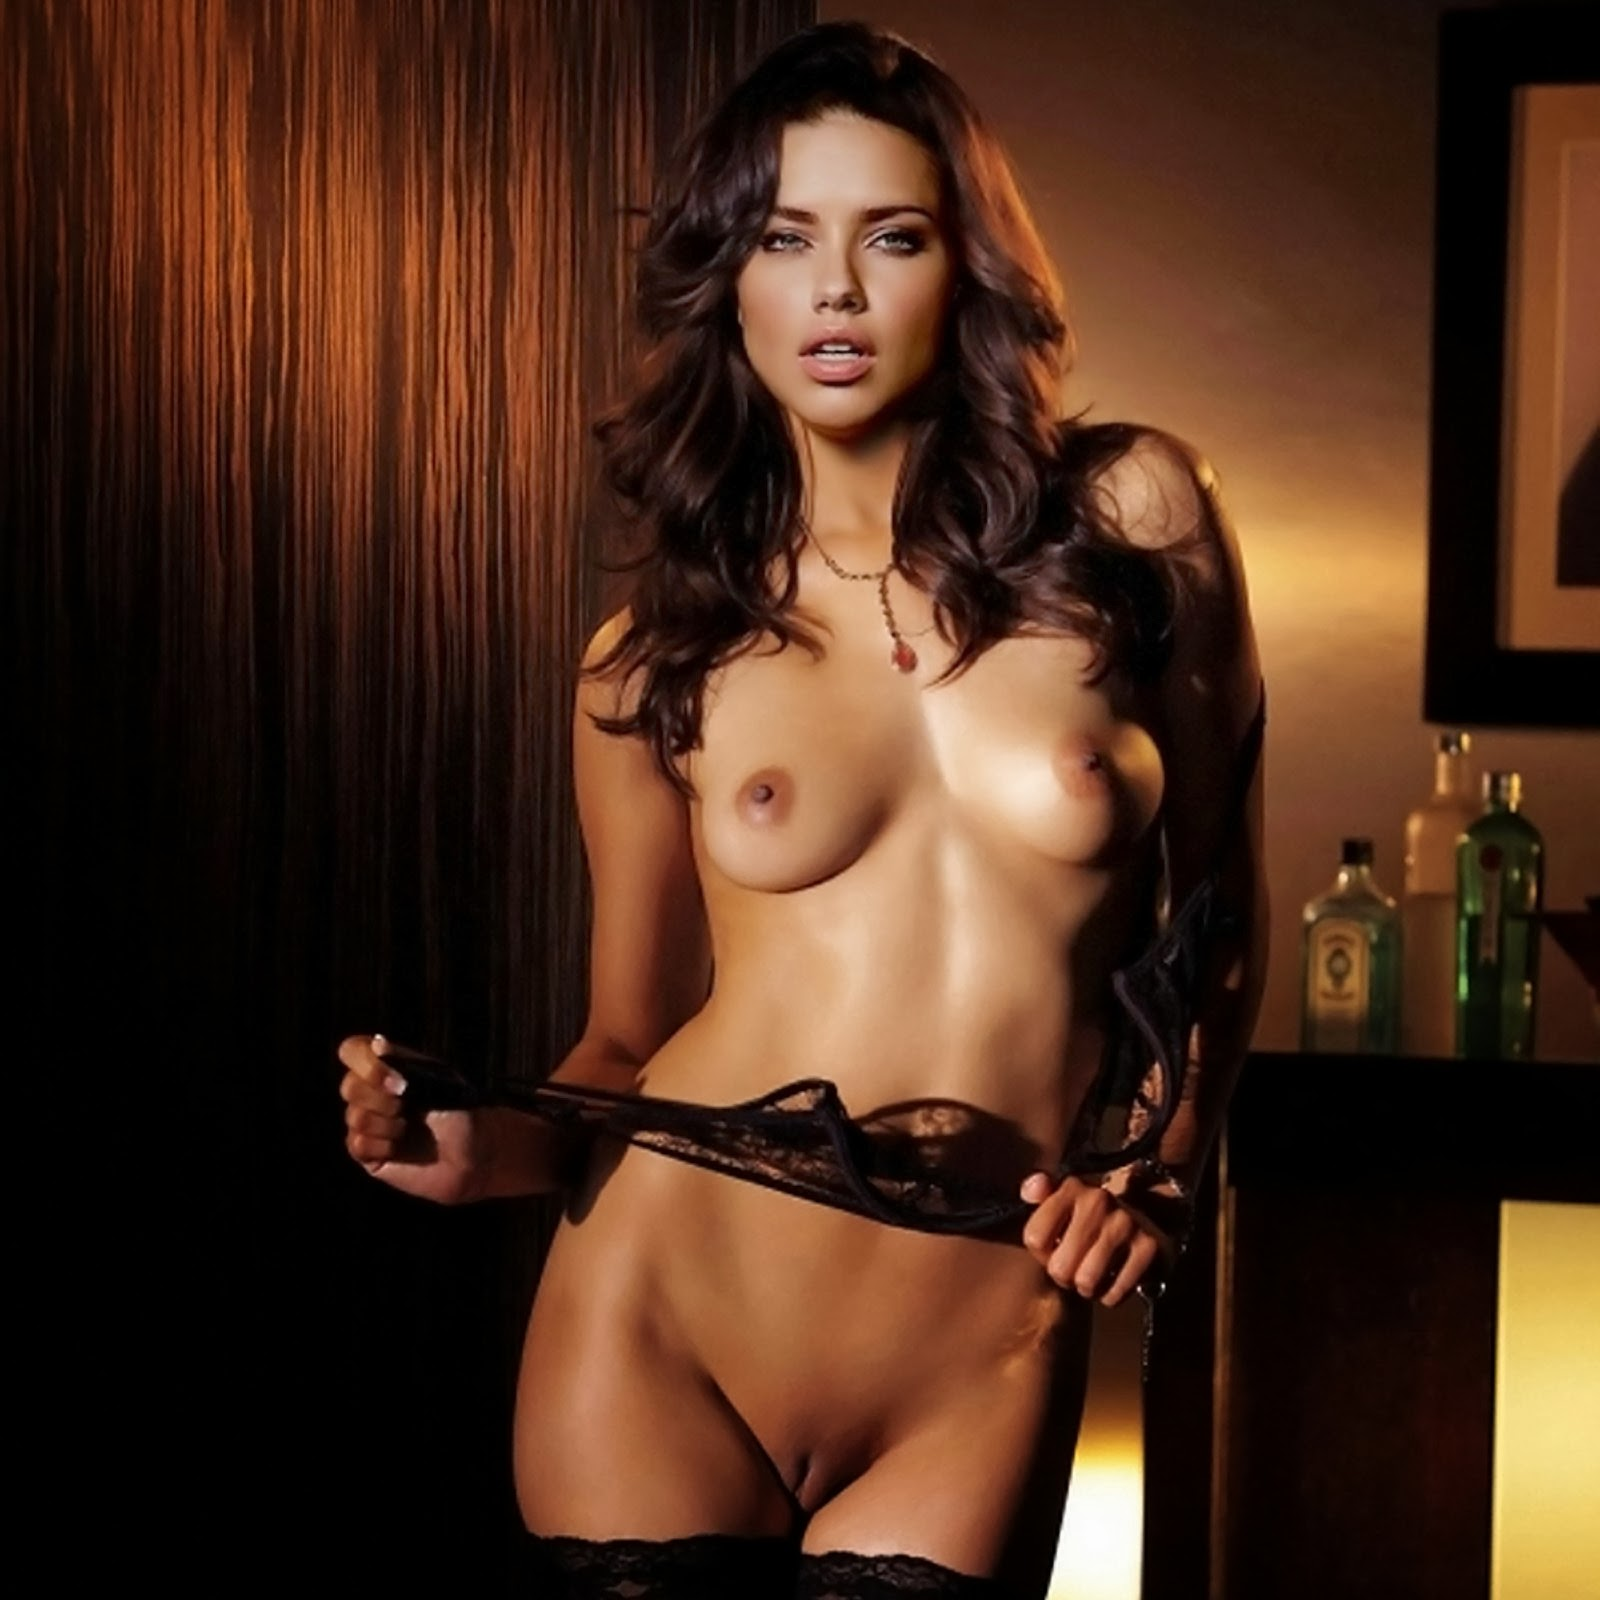 Remarkable, rather victoria secret adriana lima naked